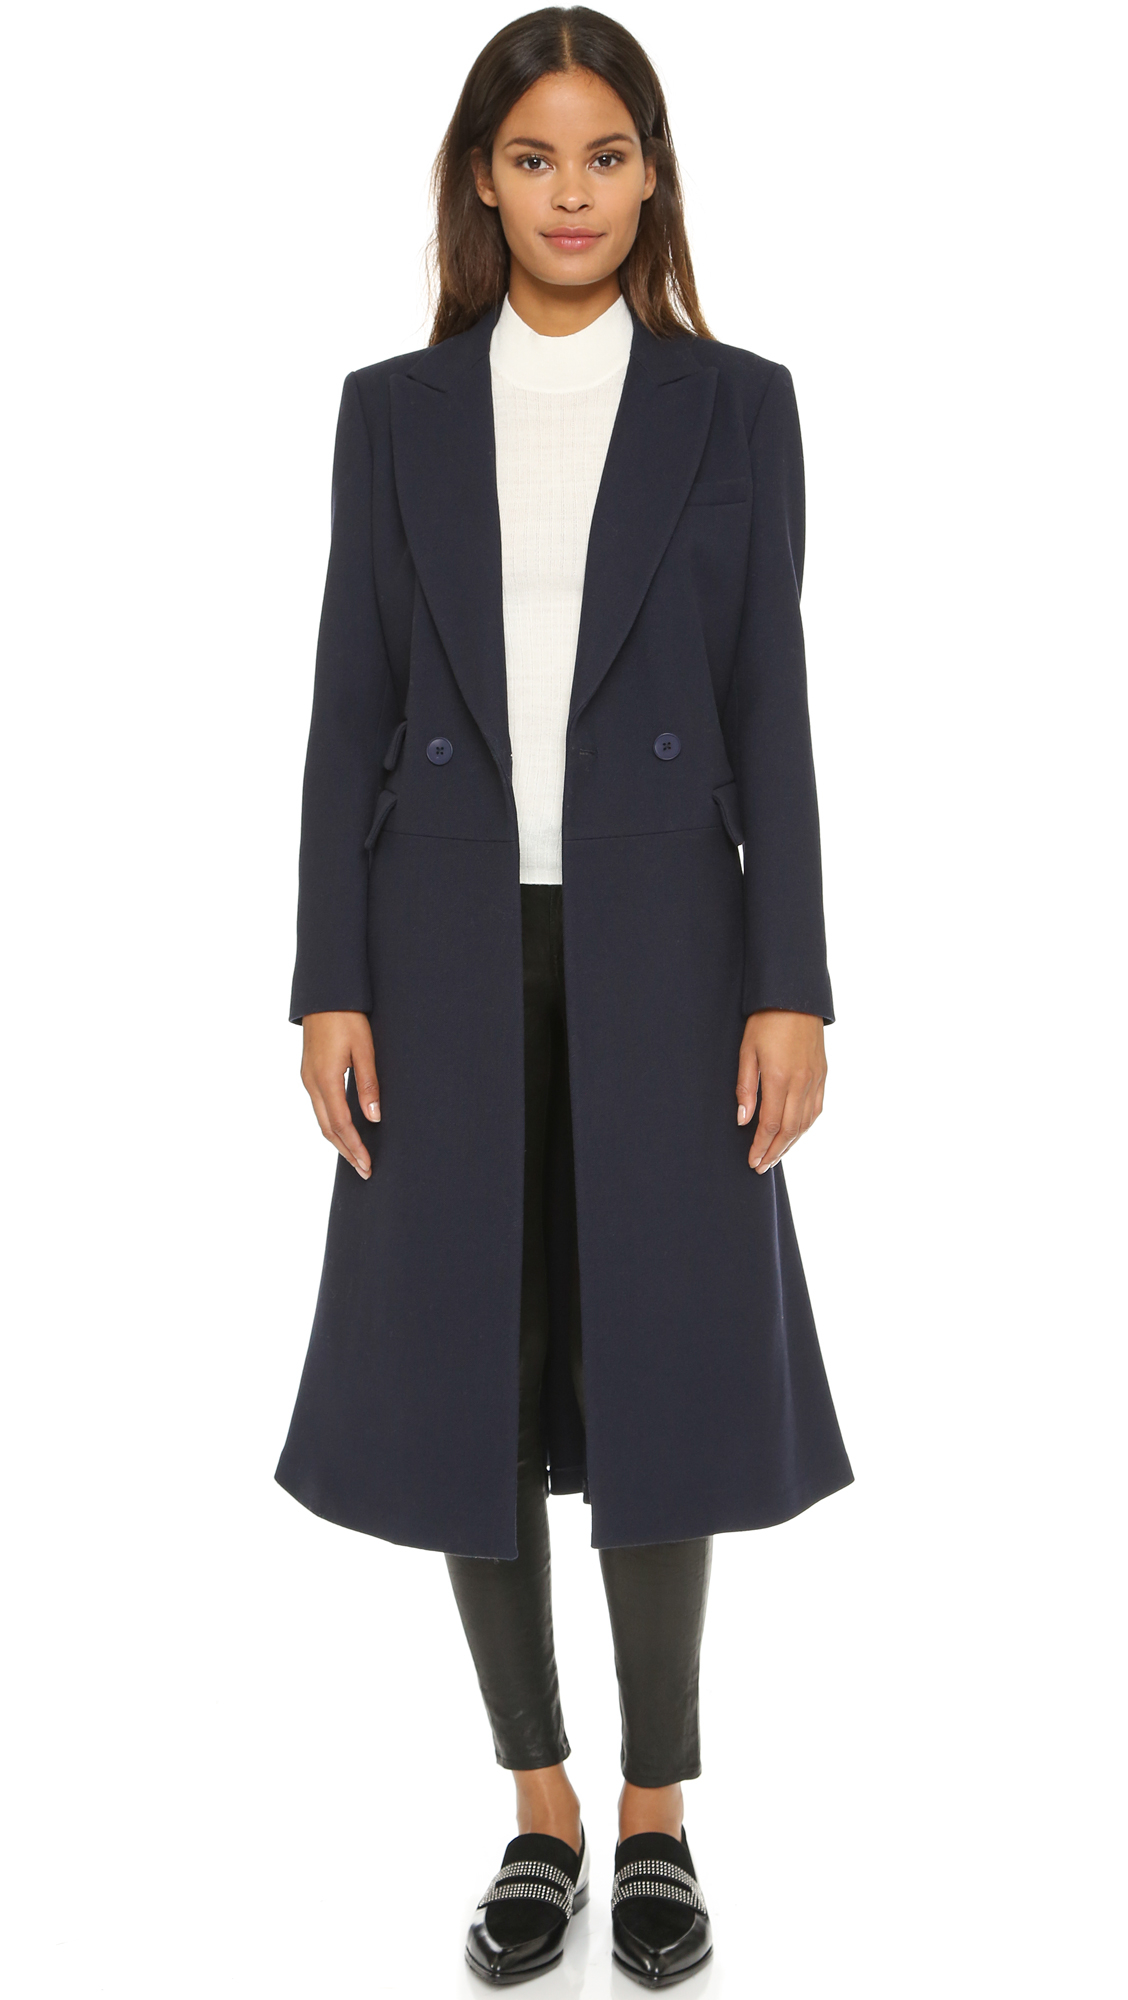 Dkny Long Sleeve Double Breasted Notch Collar Coat - Perfect Navy